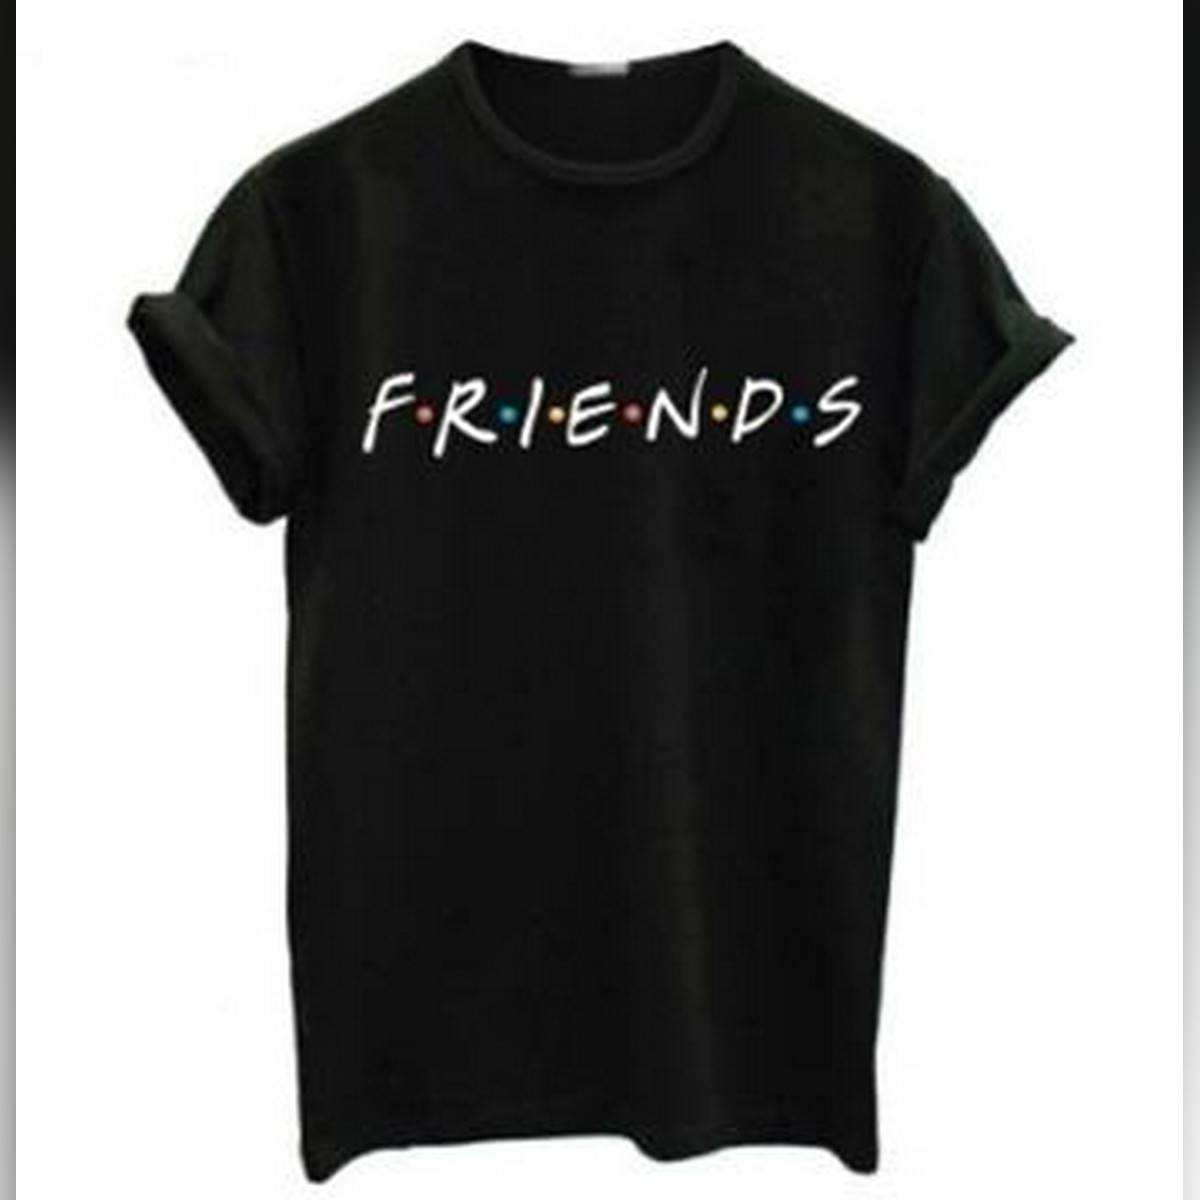 FRIENDS Letter t shirt Women t-shirt Casual Funny t shirt For Lady Girl Top Tee